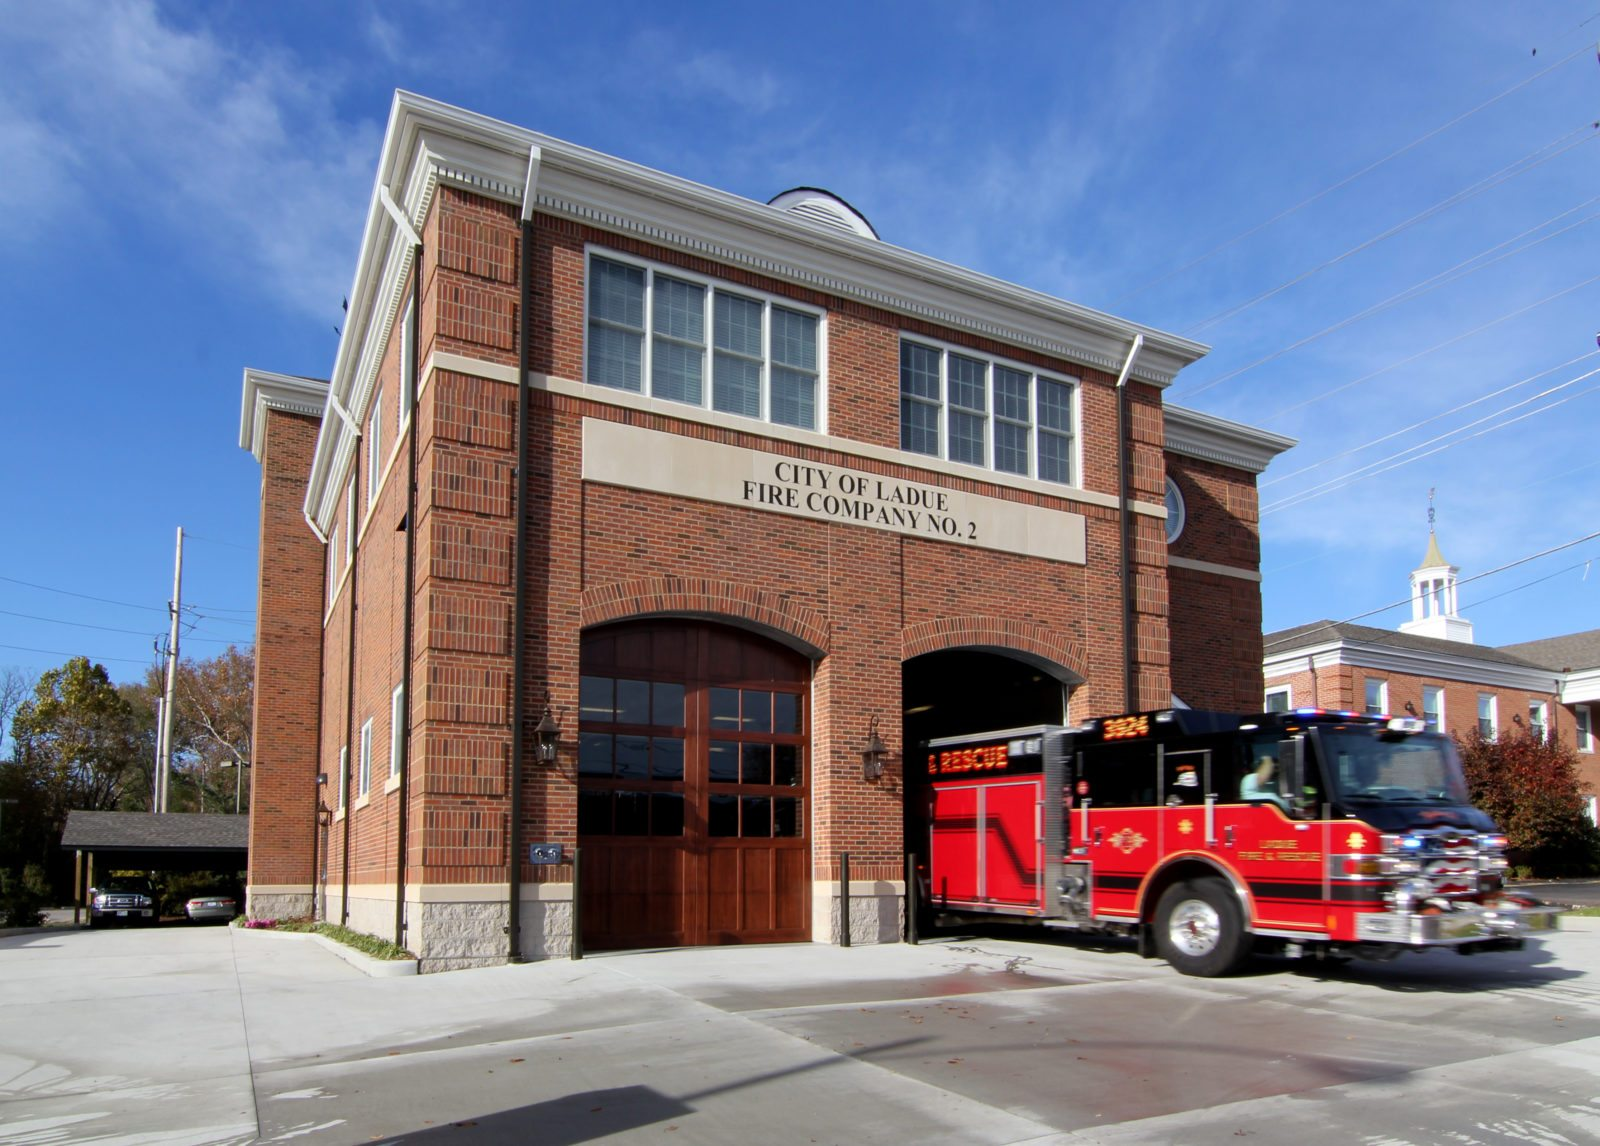 City of Ladue - Fire Station #2